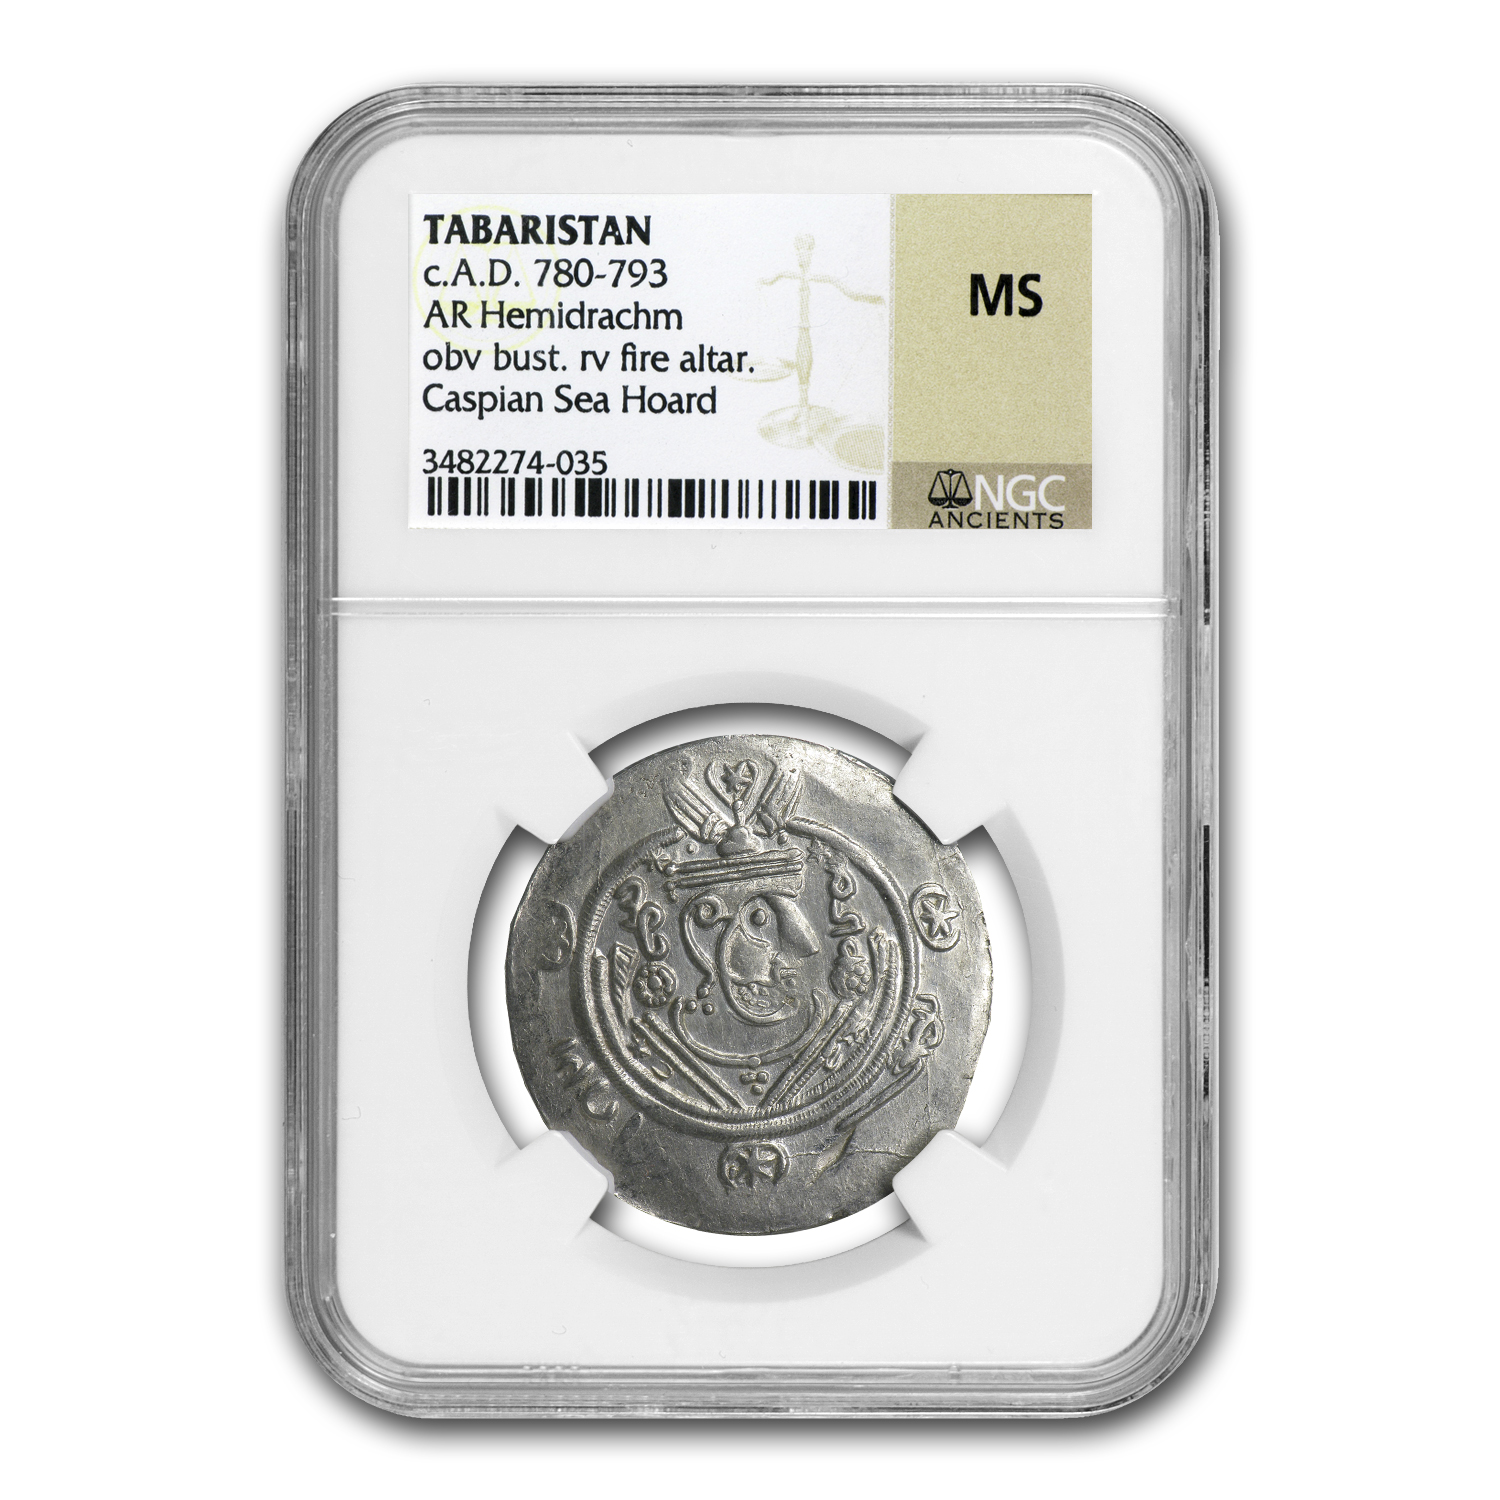 Governors of Tabaristan AR Silver Hemidrachm MS NGC (780-793 AD)